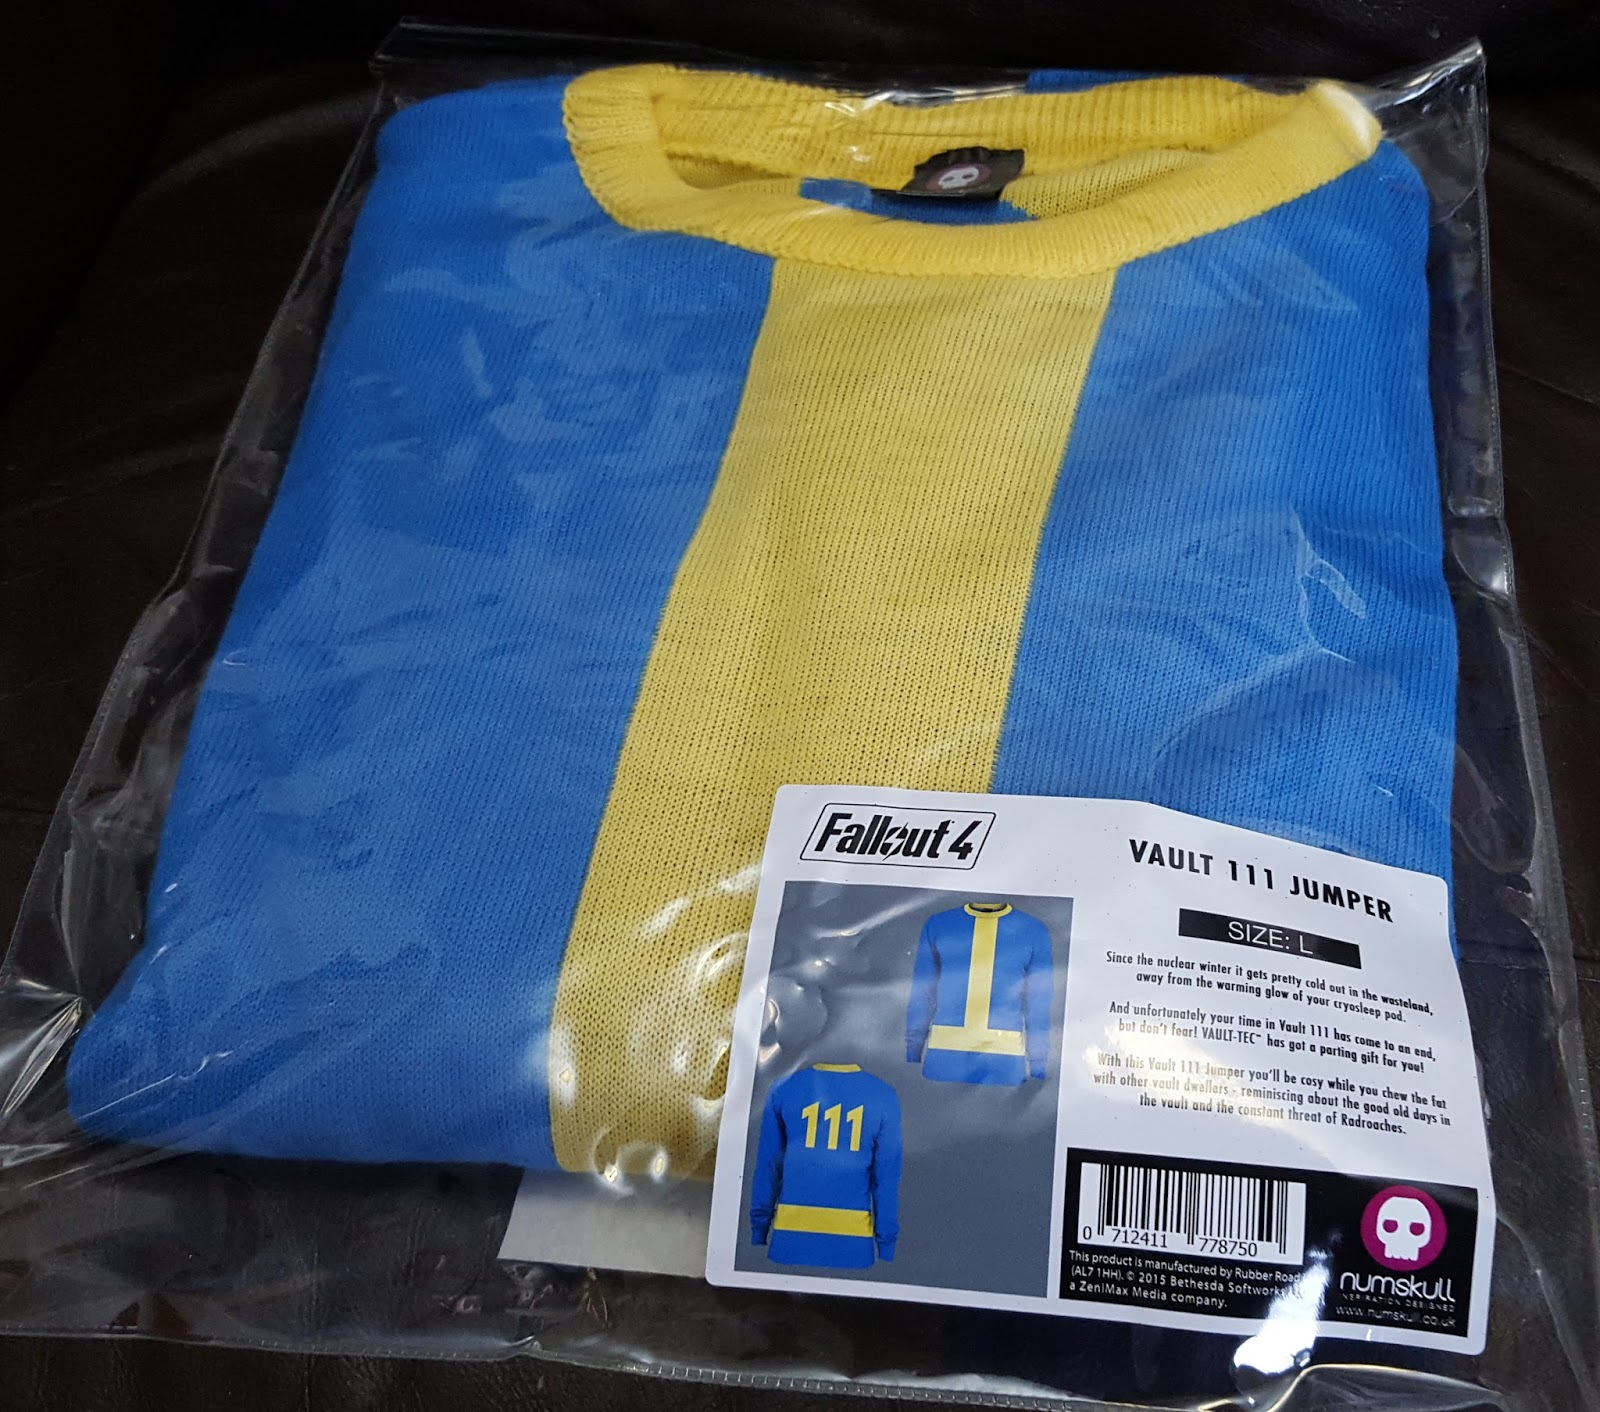 22856cdde The Brick Castle: A Vault 111 Fallout 4 Jumper for Christmas from ...